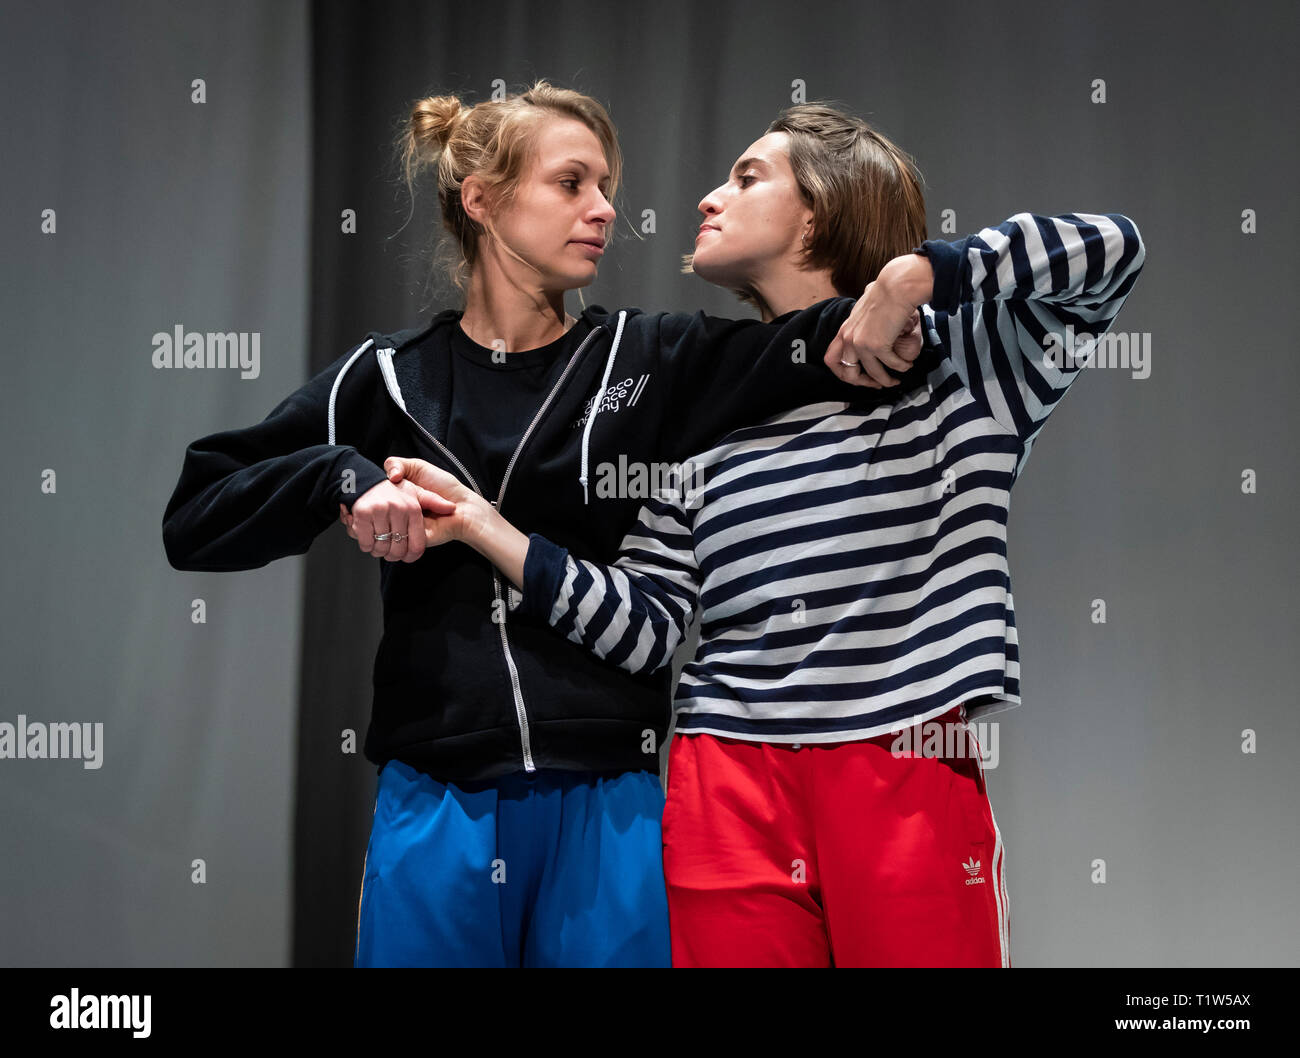 EDITORIAL USE ONLY Dancers from the Candoco Dance Company rehearse their Face In / Let's Talk About Dis performances, as part of the IETM Hull 2019 programme presented by Absolutely Cultured at Middleton Hall at The University of Hull. Stock Photo